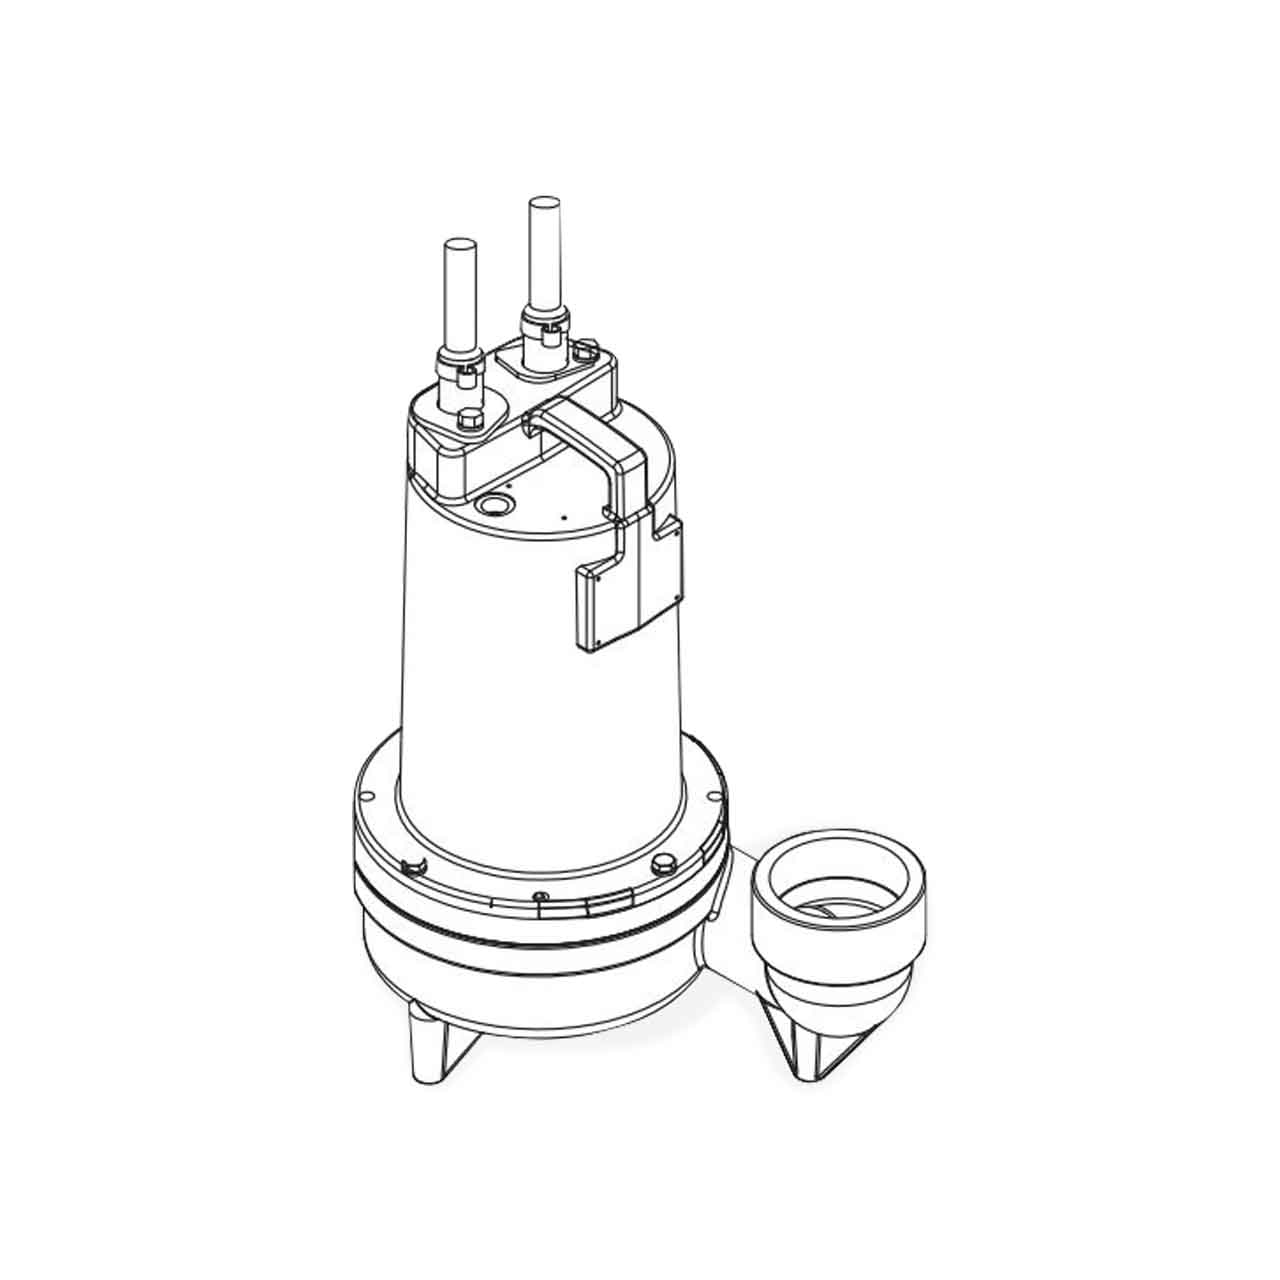 hight resolution of barnes barnes 3se2022l submersible sewage ejector pump 2 0 hp 230v 1ph 30 cord manual brn132848